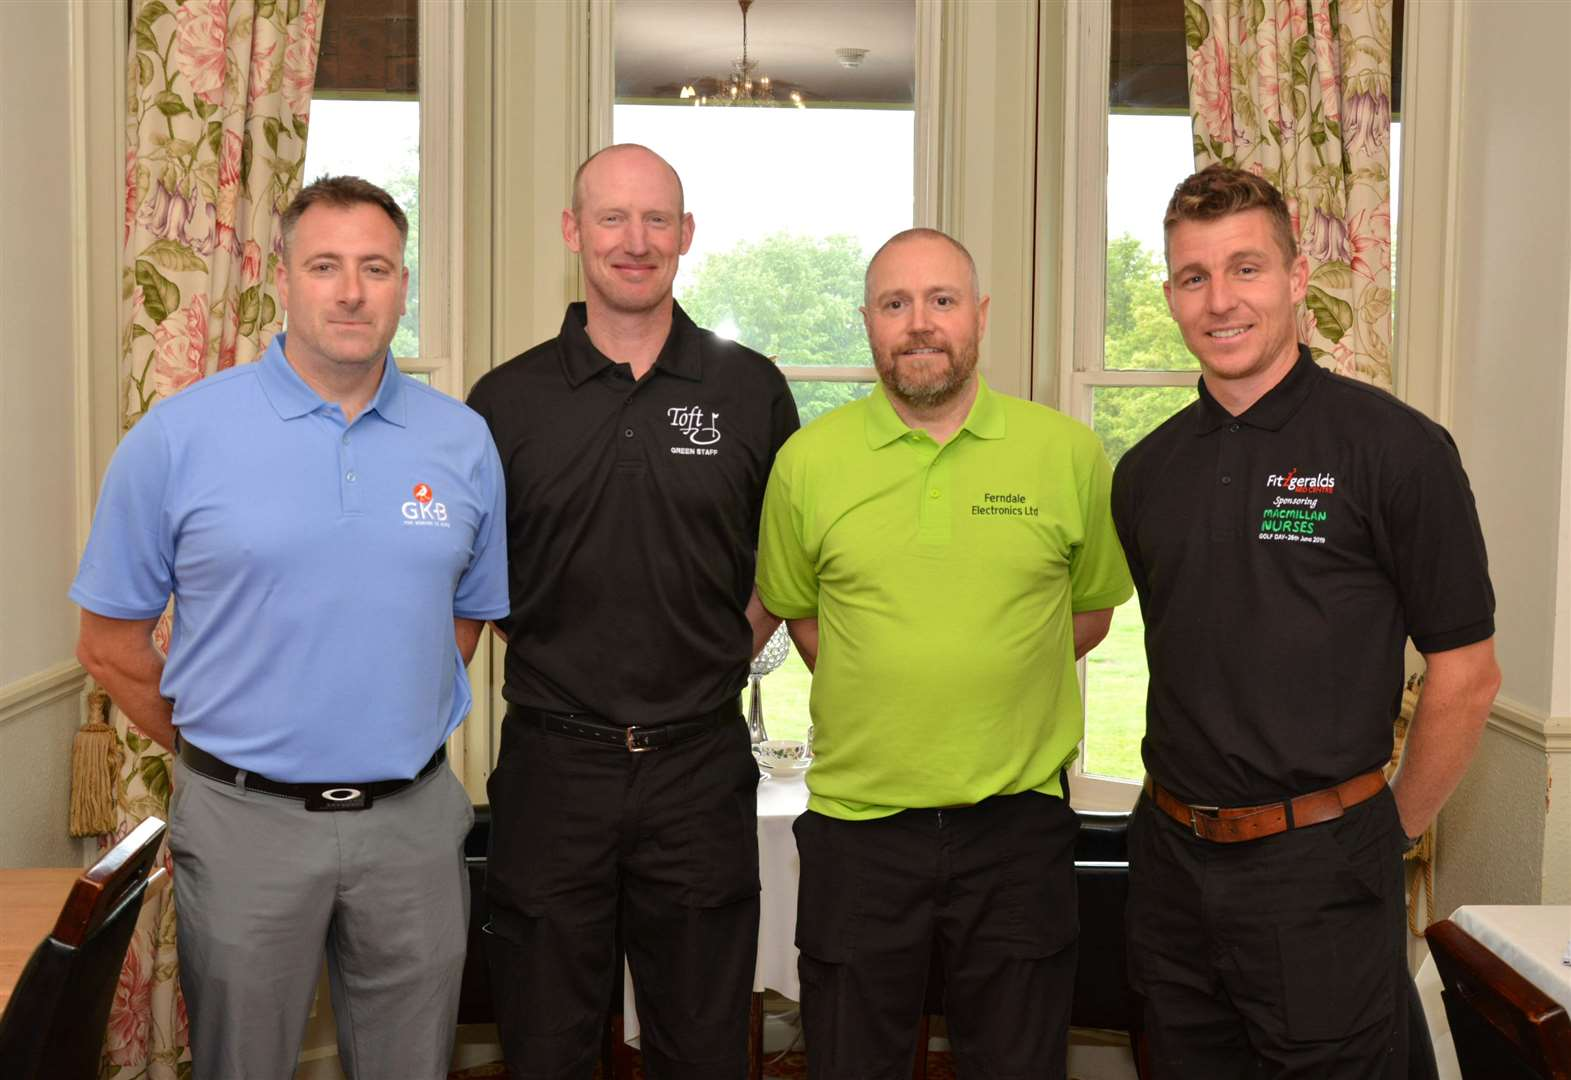 Greenkeepers to take part in longest day of golf